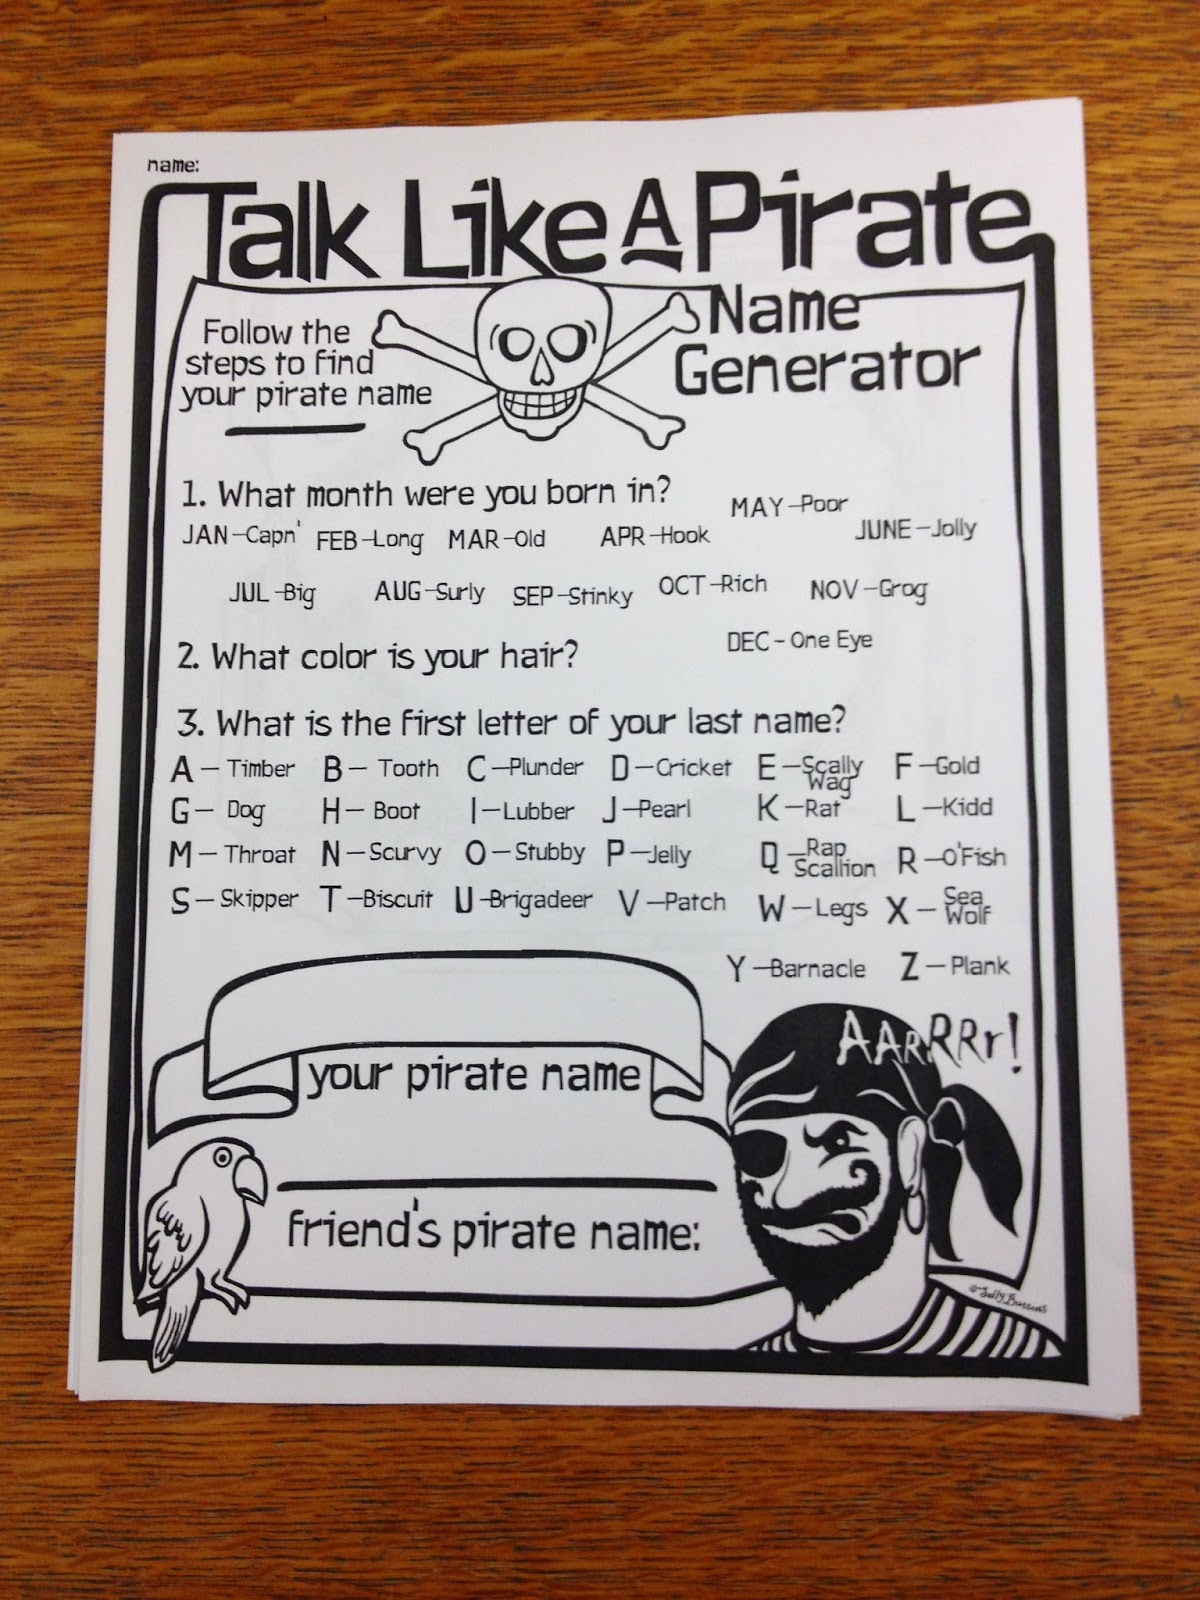 http://www.teacherspayteachers.com/Product/Talk-Like-A-Pirate-Day-Name-Generator-1454159